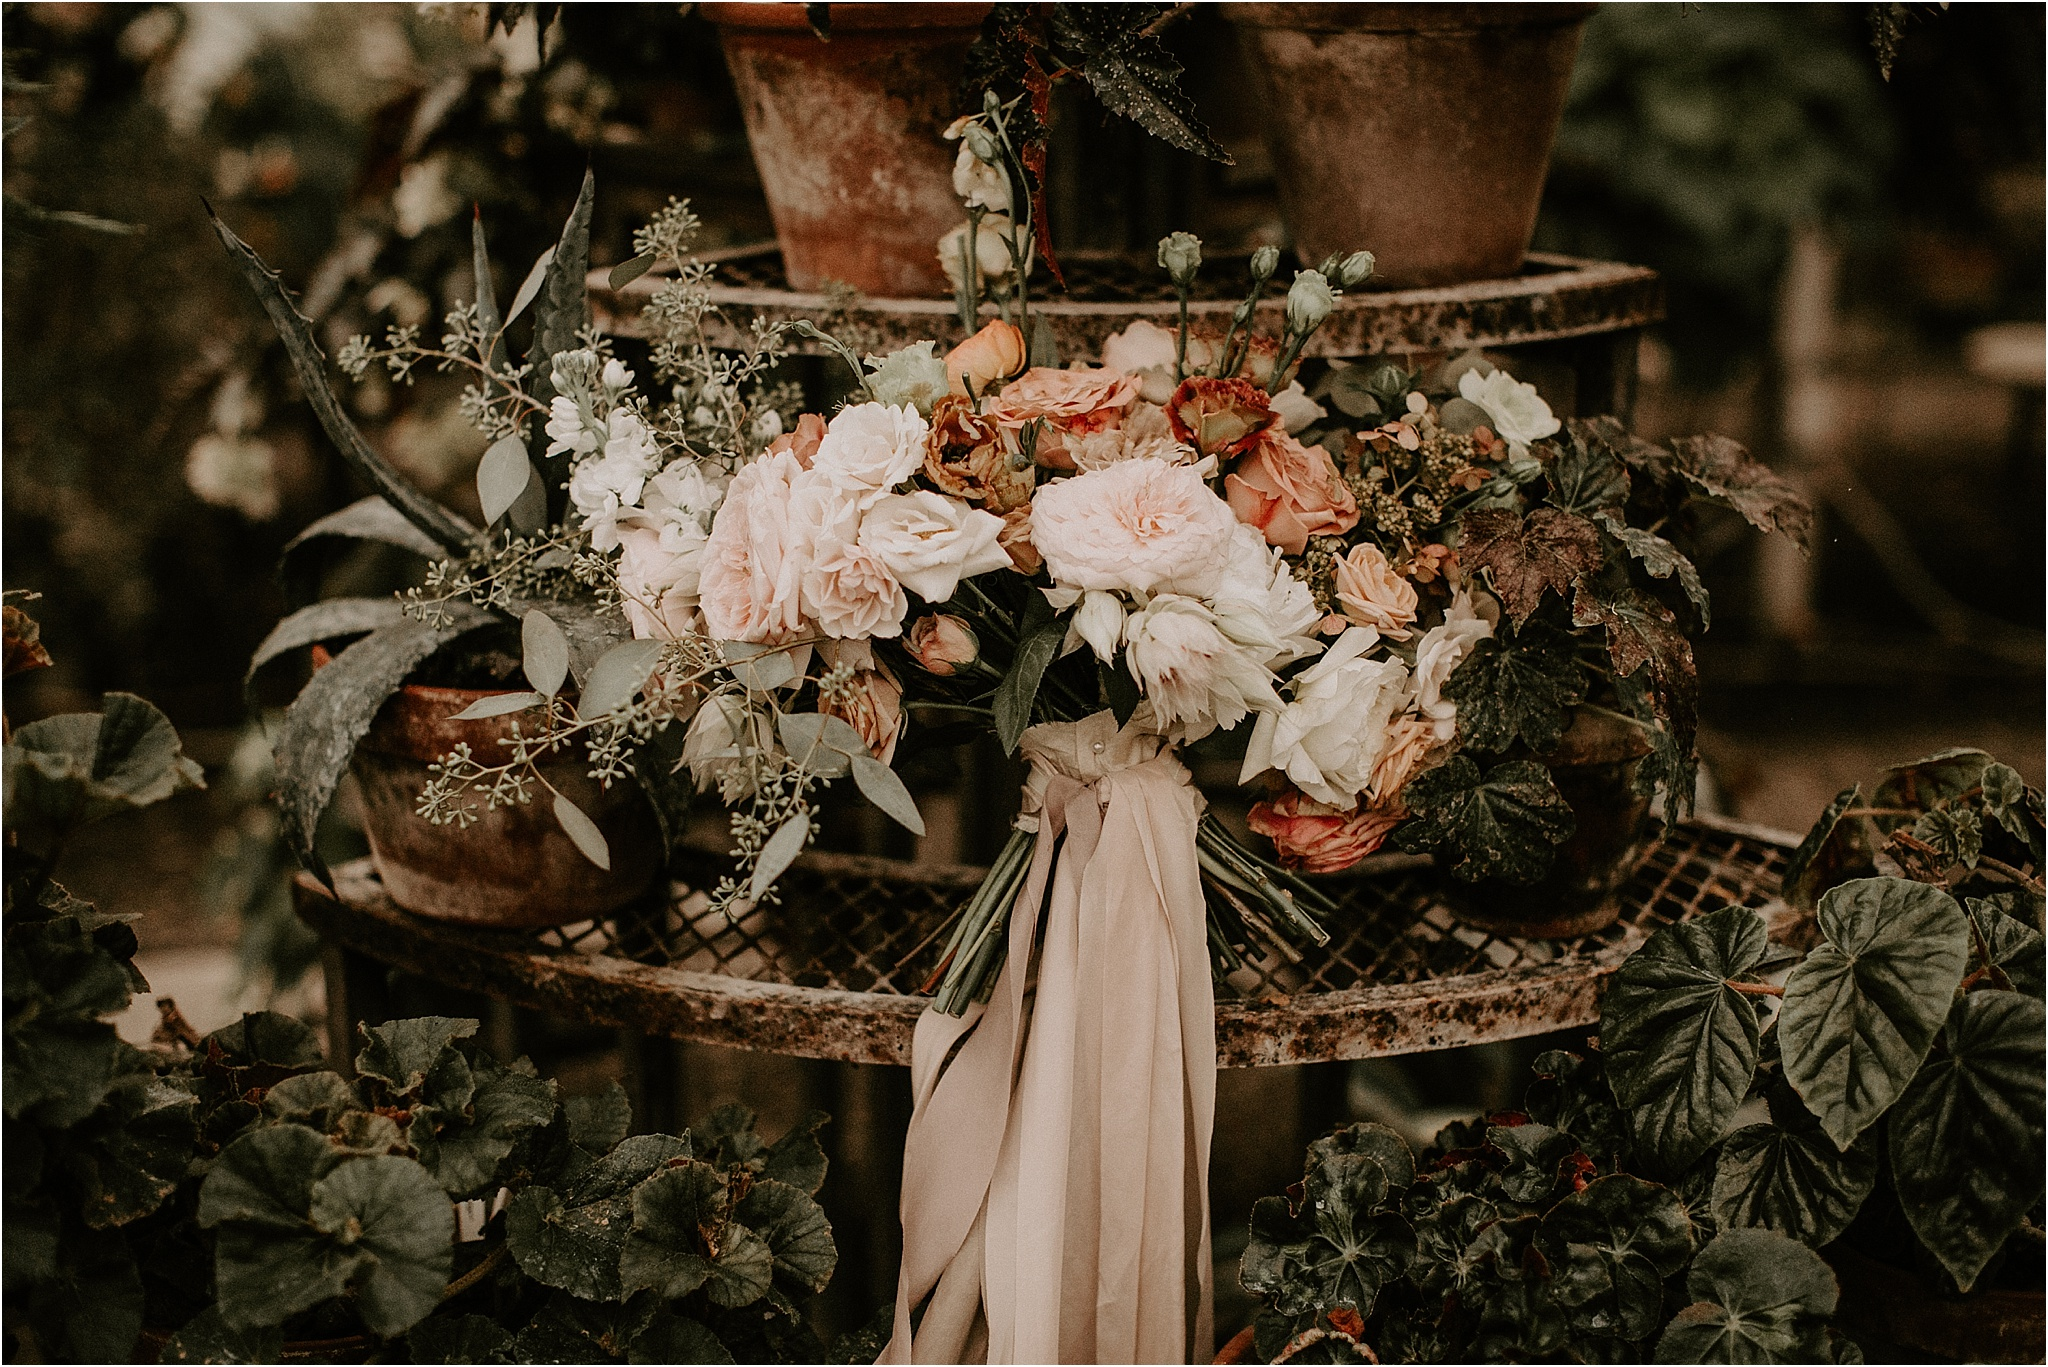 Sarah_Brookhart_Hortulus_Farm_Garden_and_Nursey_Wedding_Photographer_0030.jpg